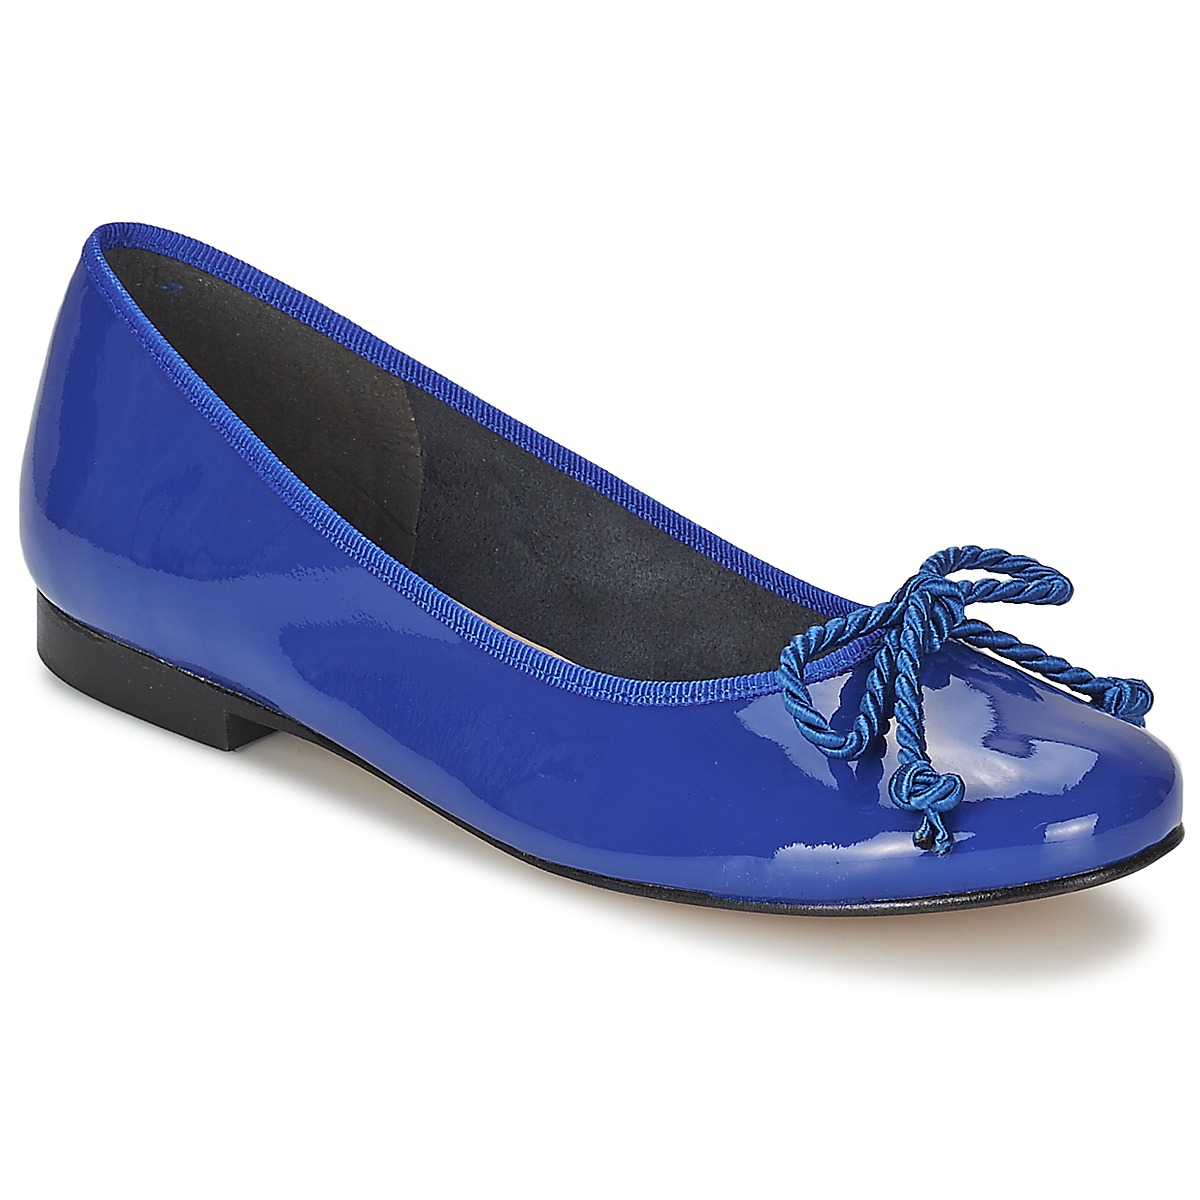 Ballerinas BT London LIVIANO MARINE